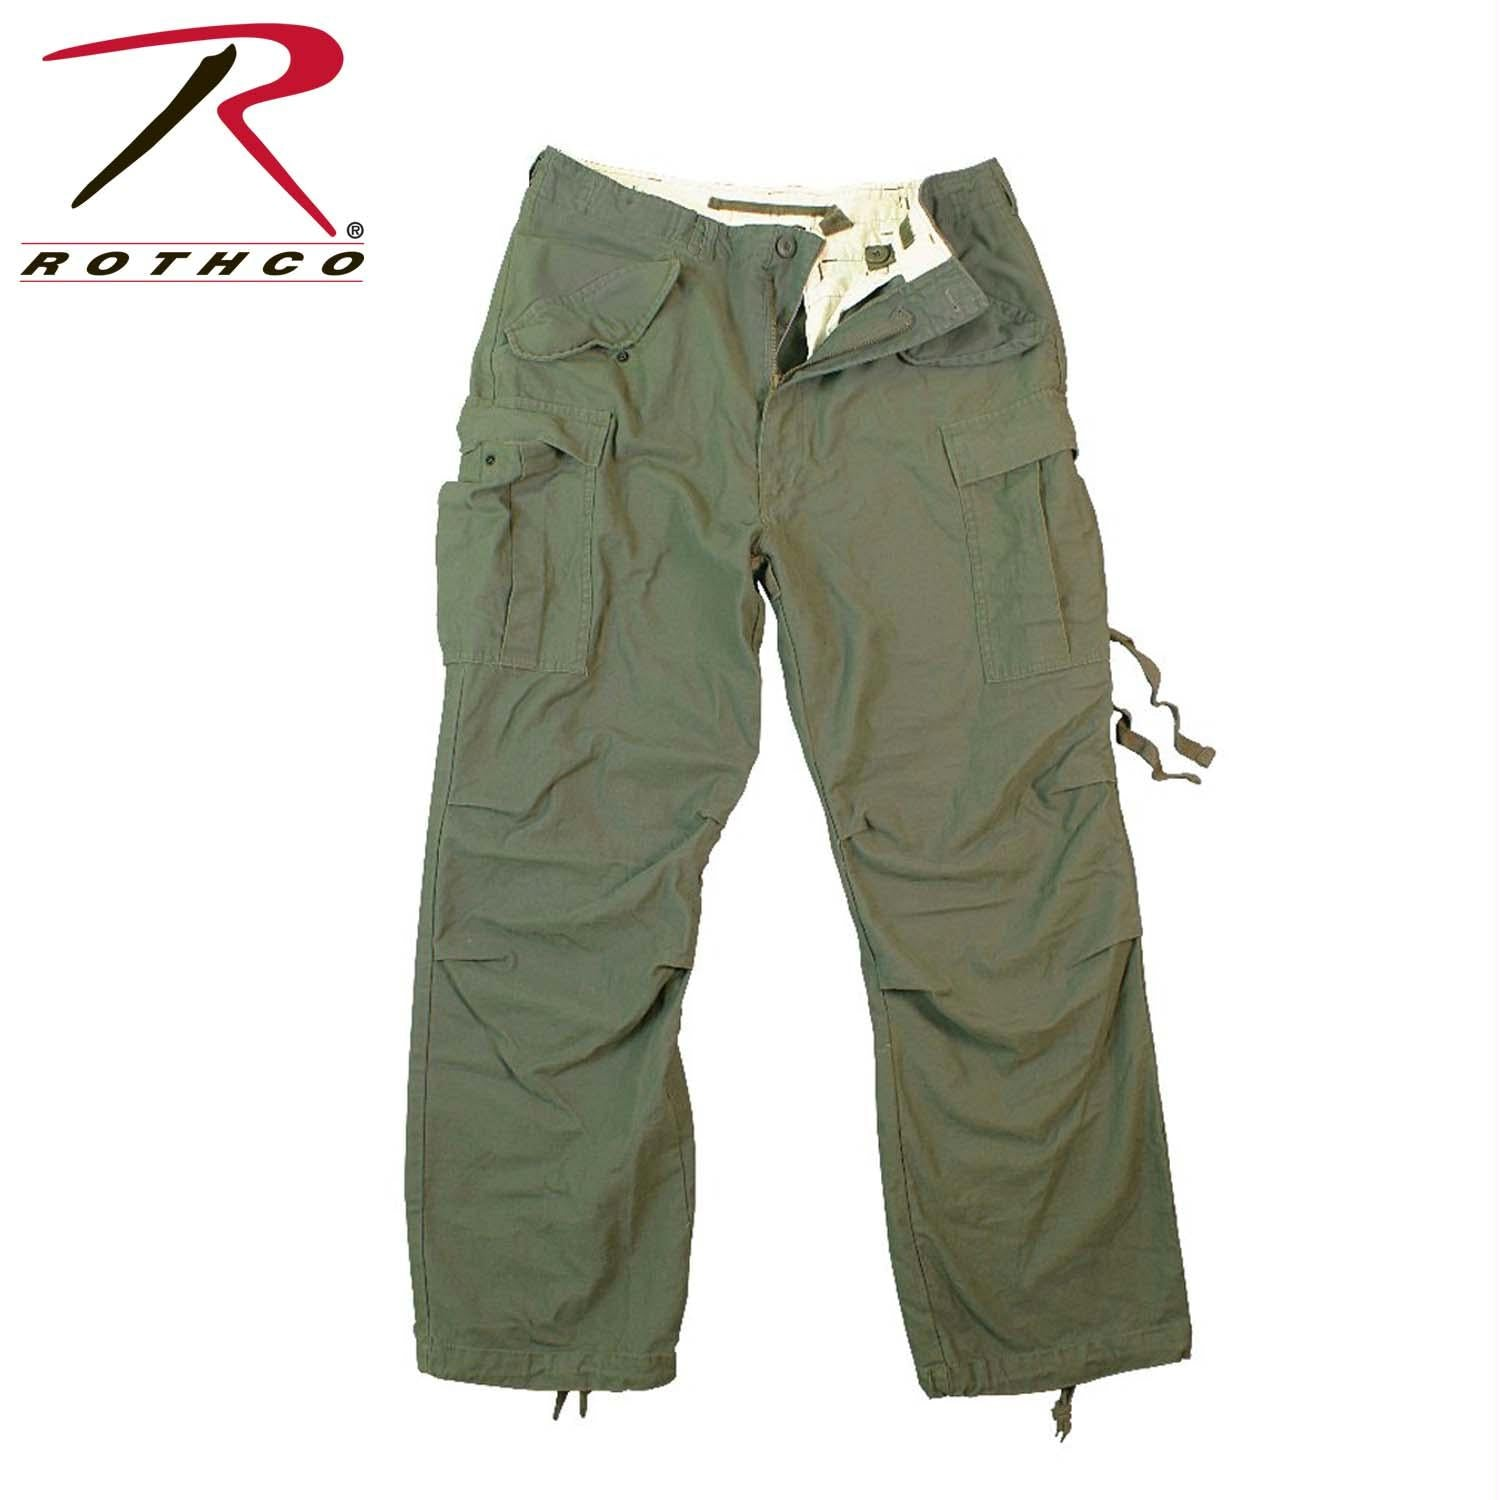 Rothco Vintage M-65 Field Pant - Olive Drab / L